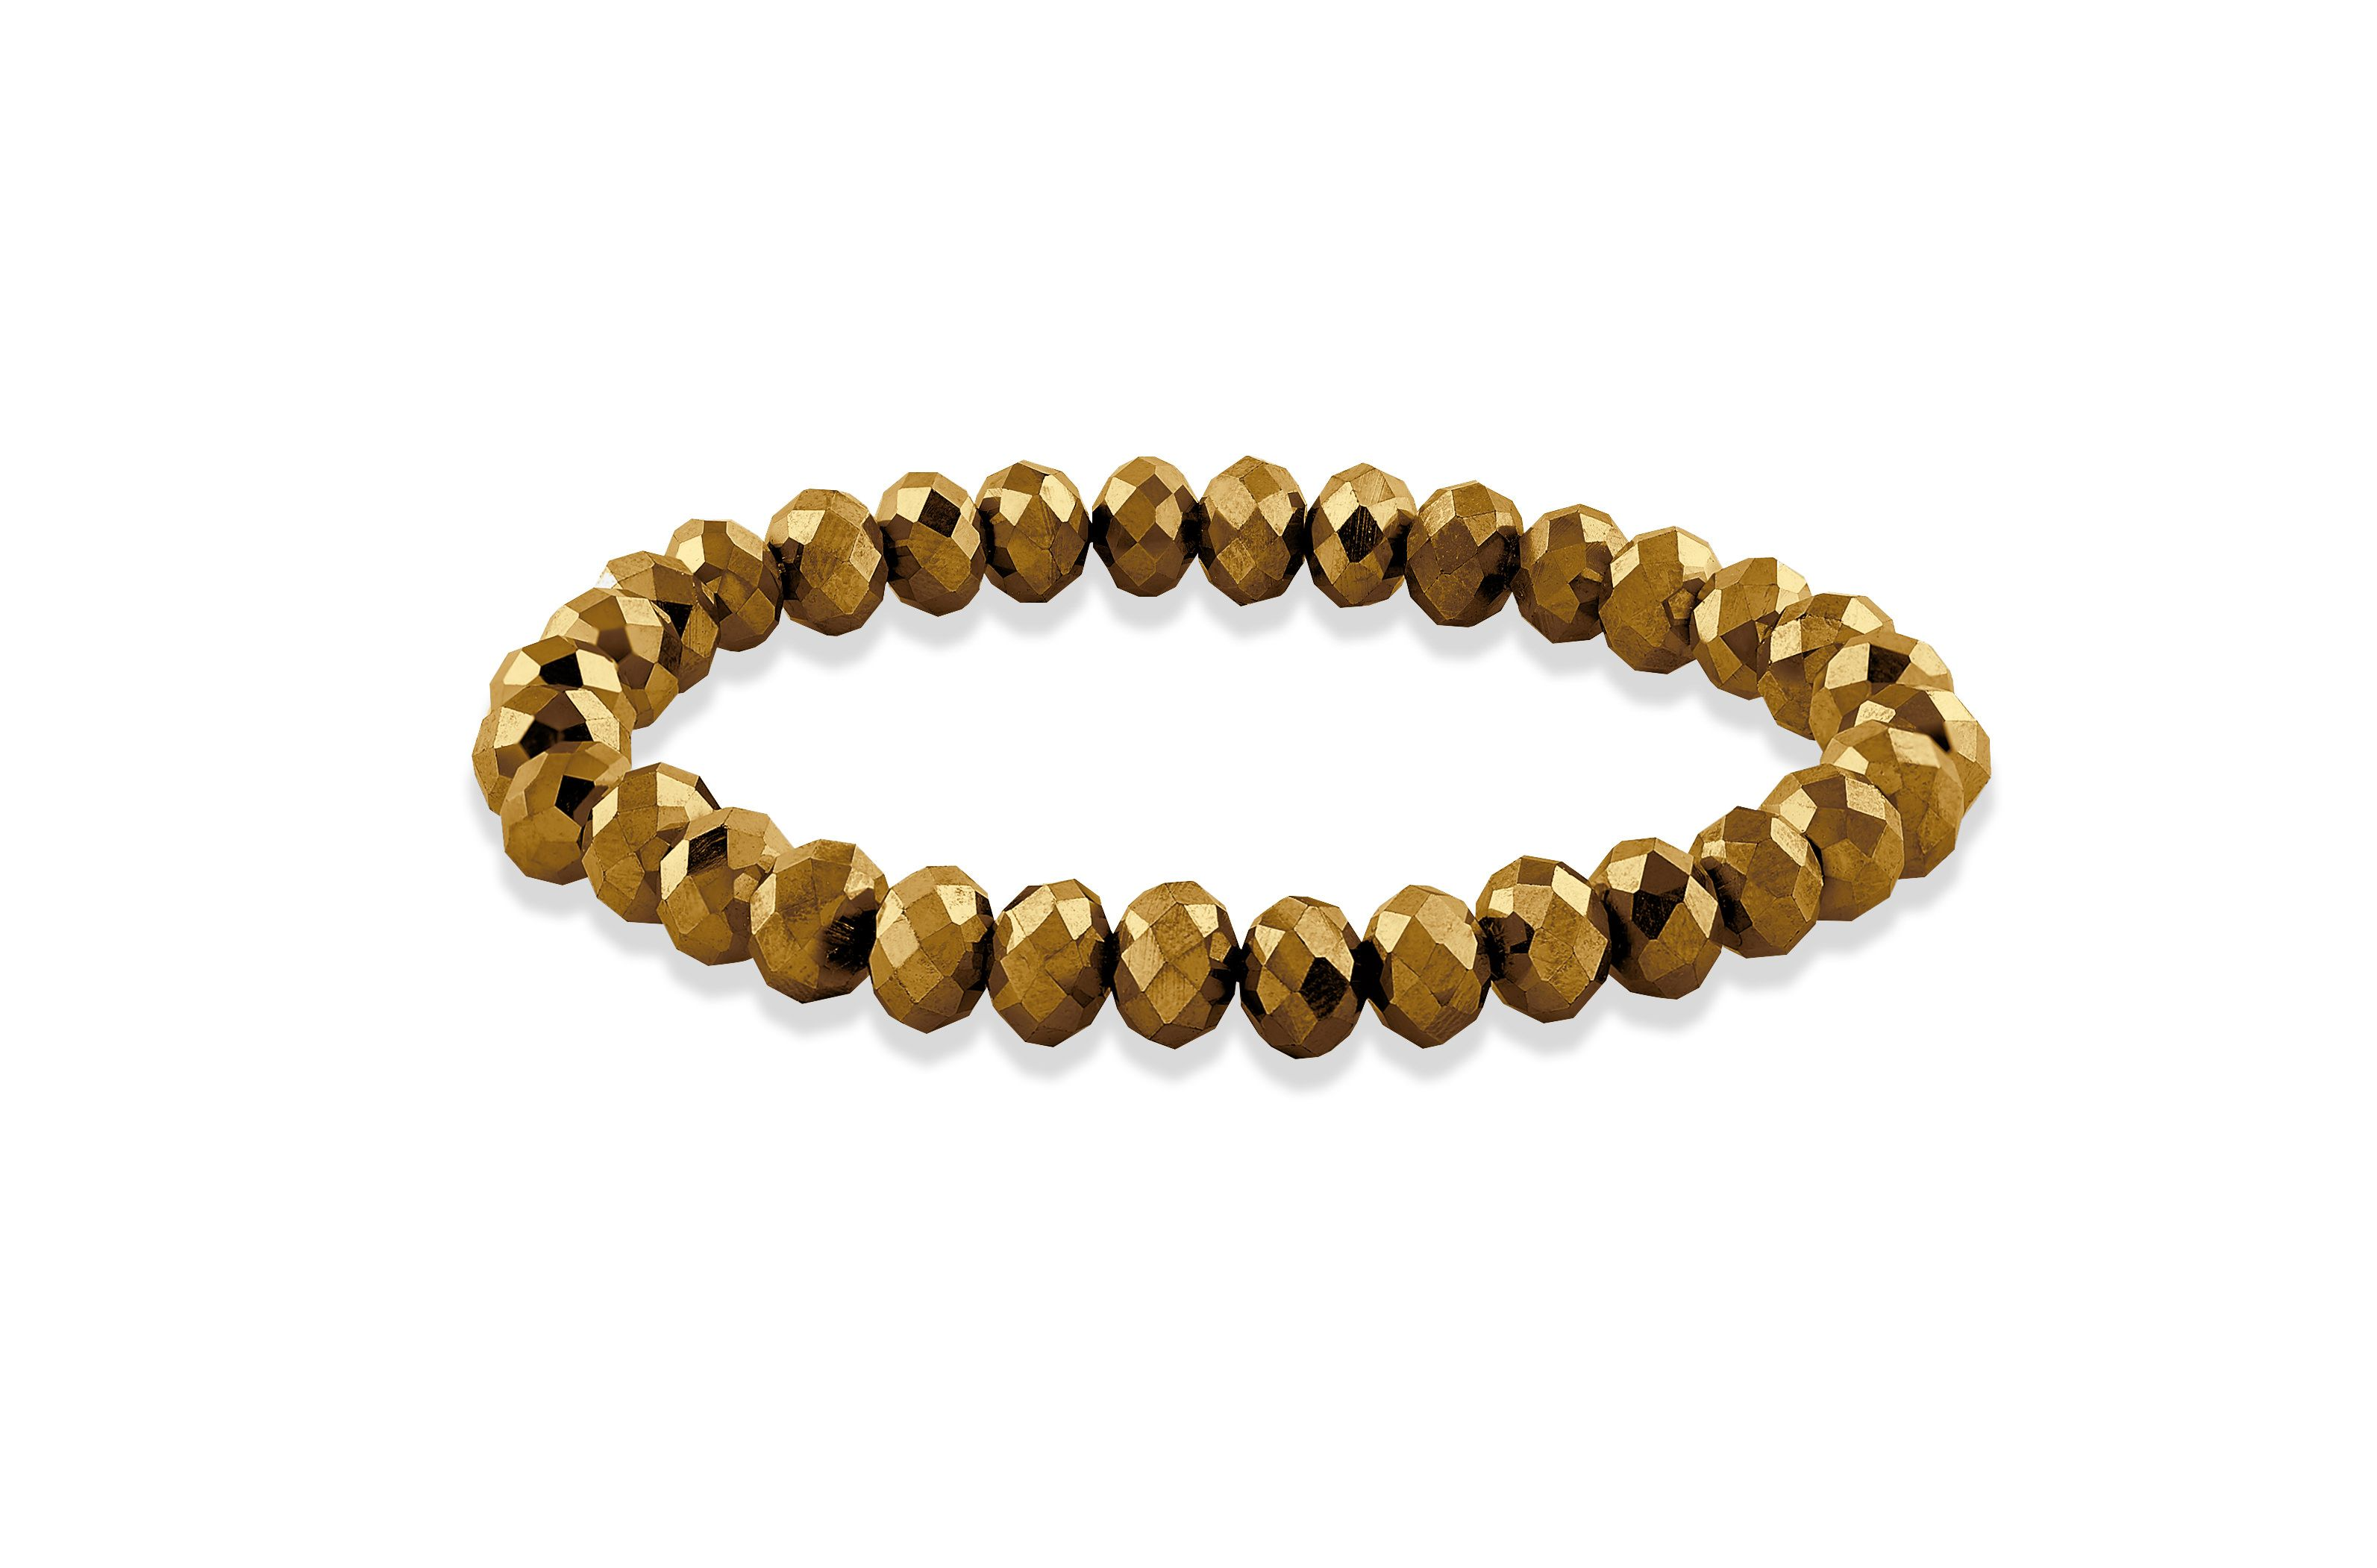 buckley london glass bead bracelet